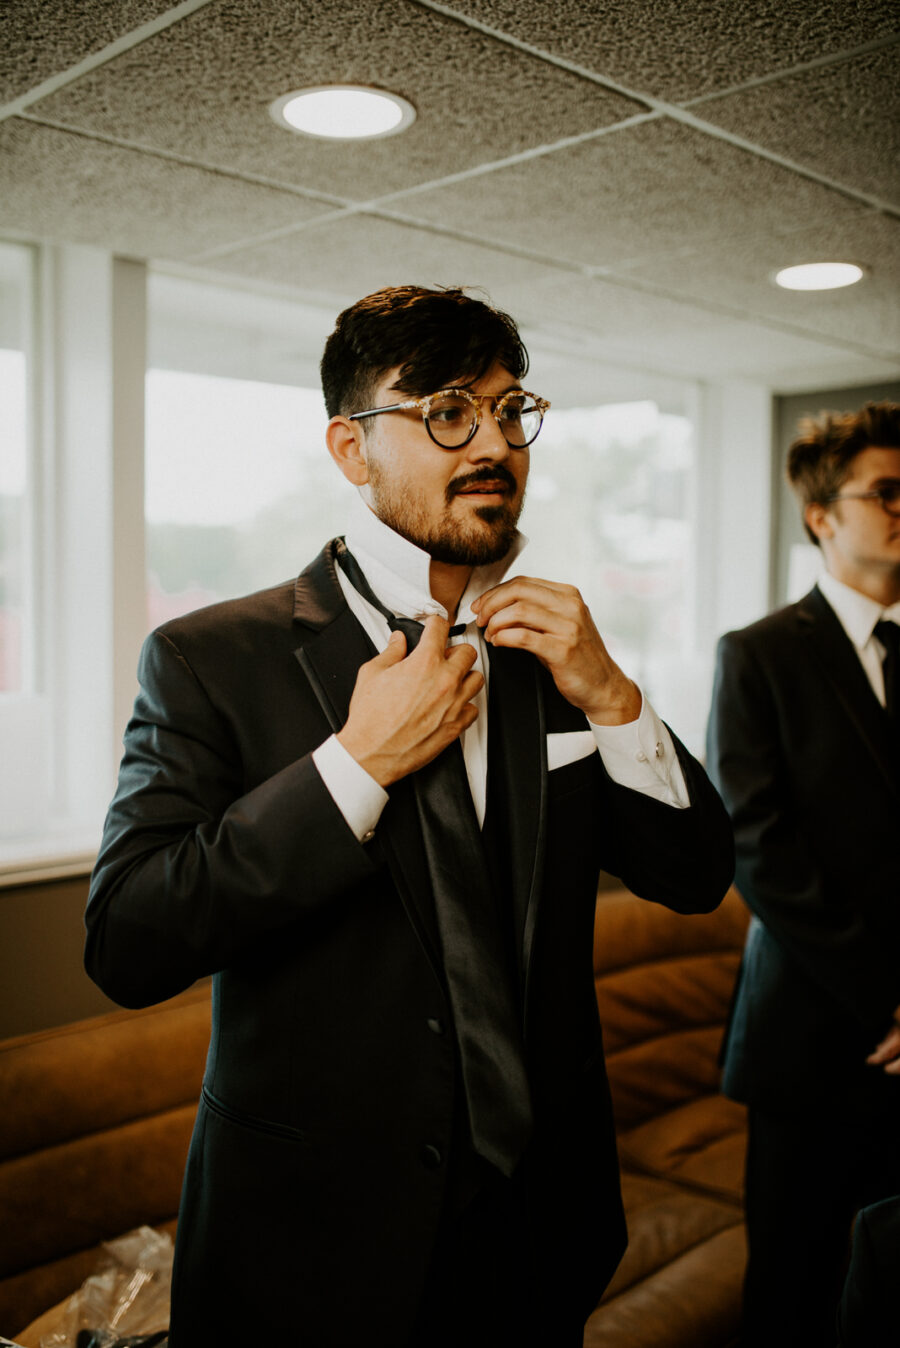 Groom getting ready in wedding attire: Romantic Nashville Wedding at The Bedford featured on Nashville Bride Guide